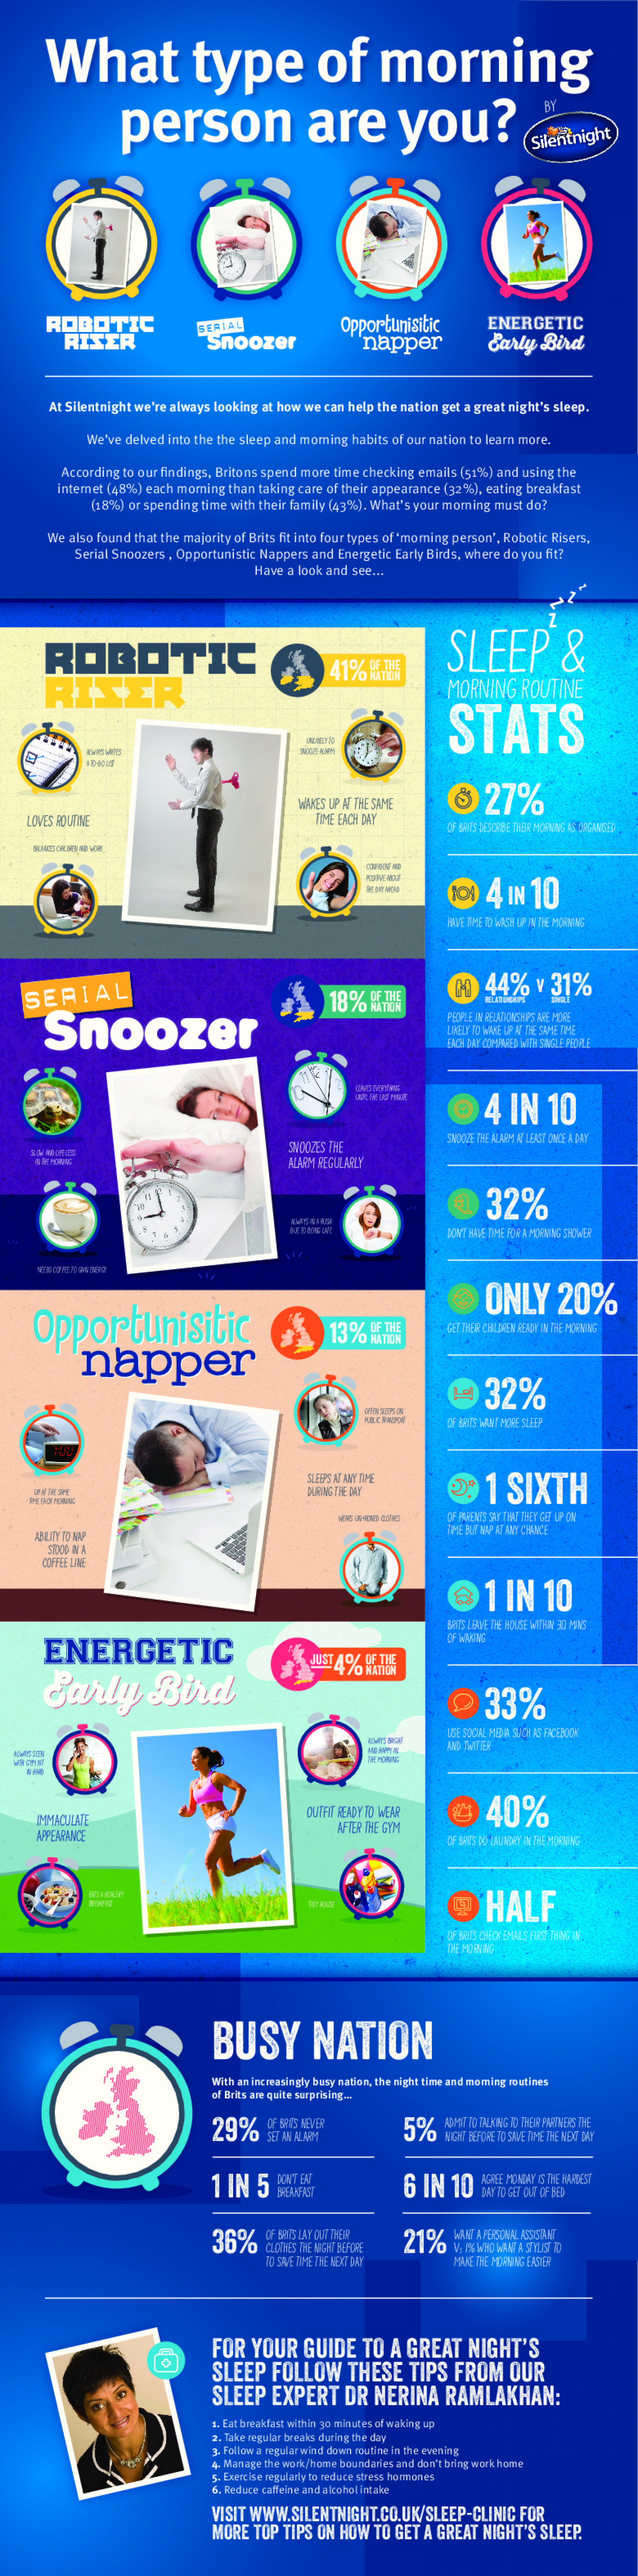 What Type of Morning Person Are You?  Infographic